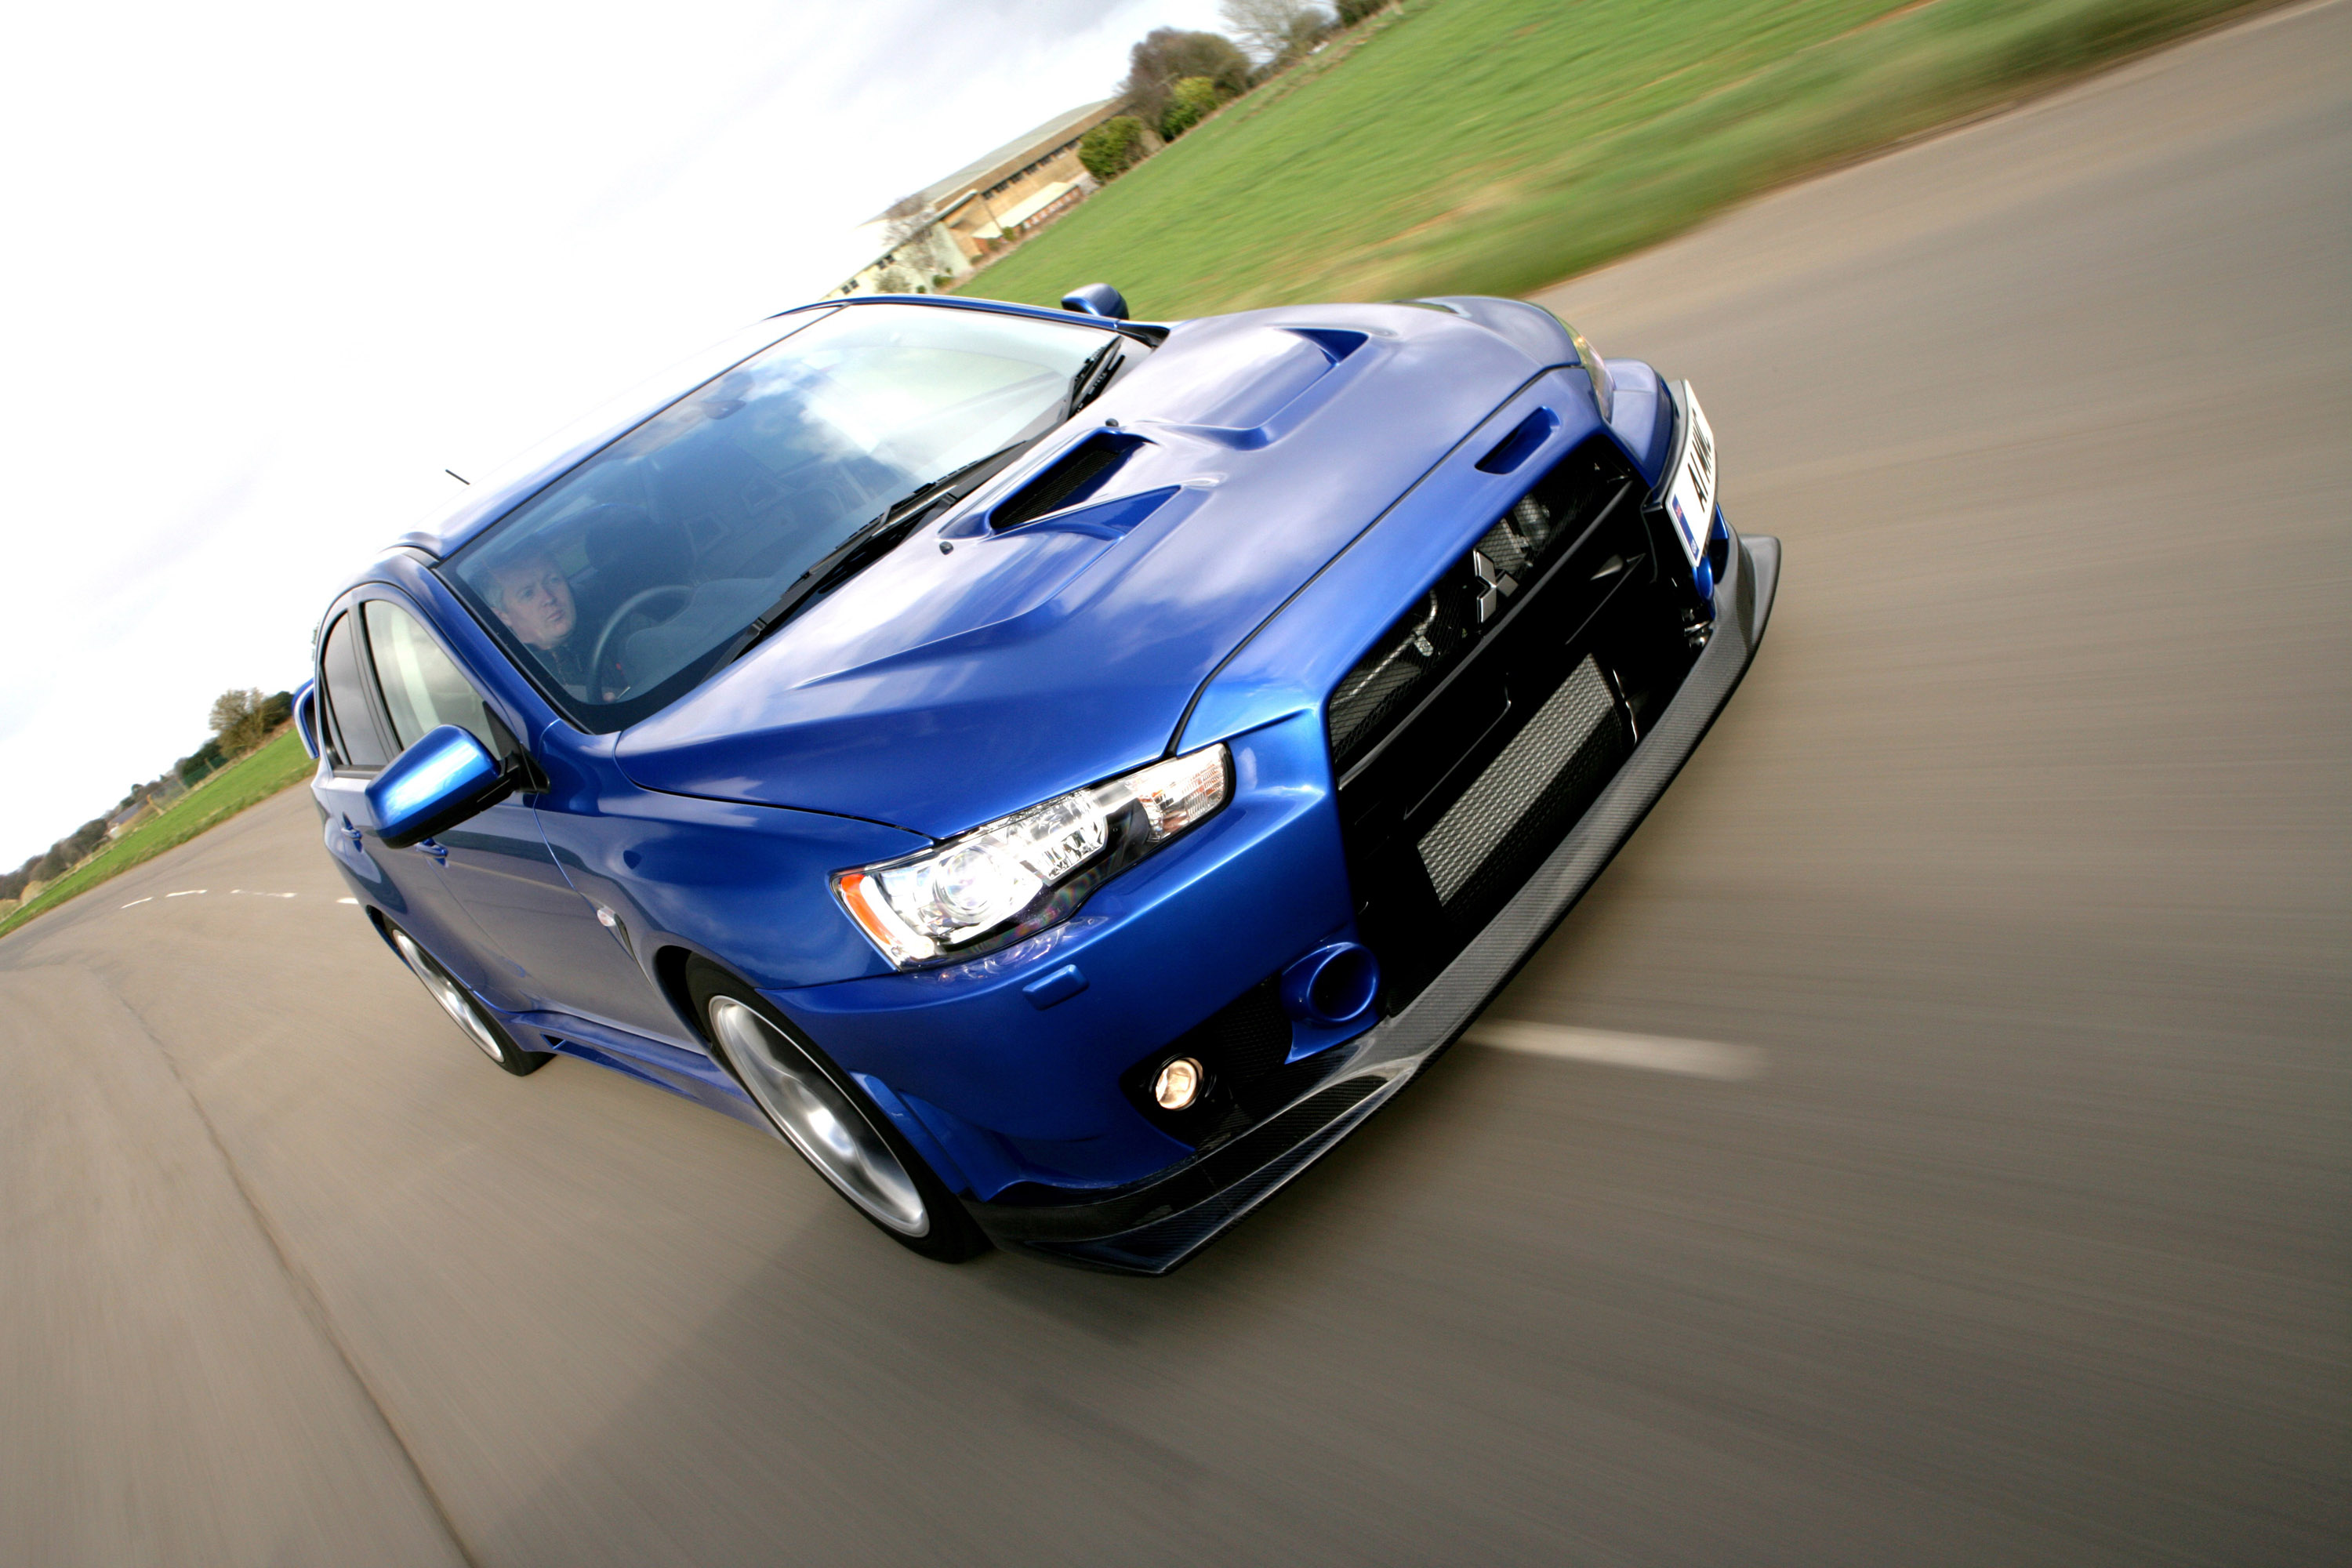 Mitsubishi Lancer Evolution X Fq 400 Picture 21101